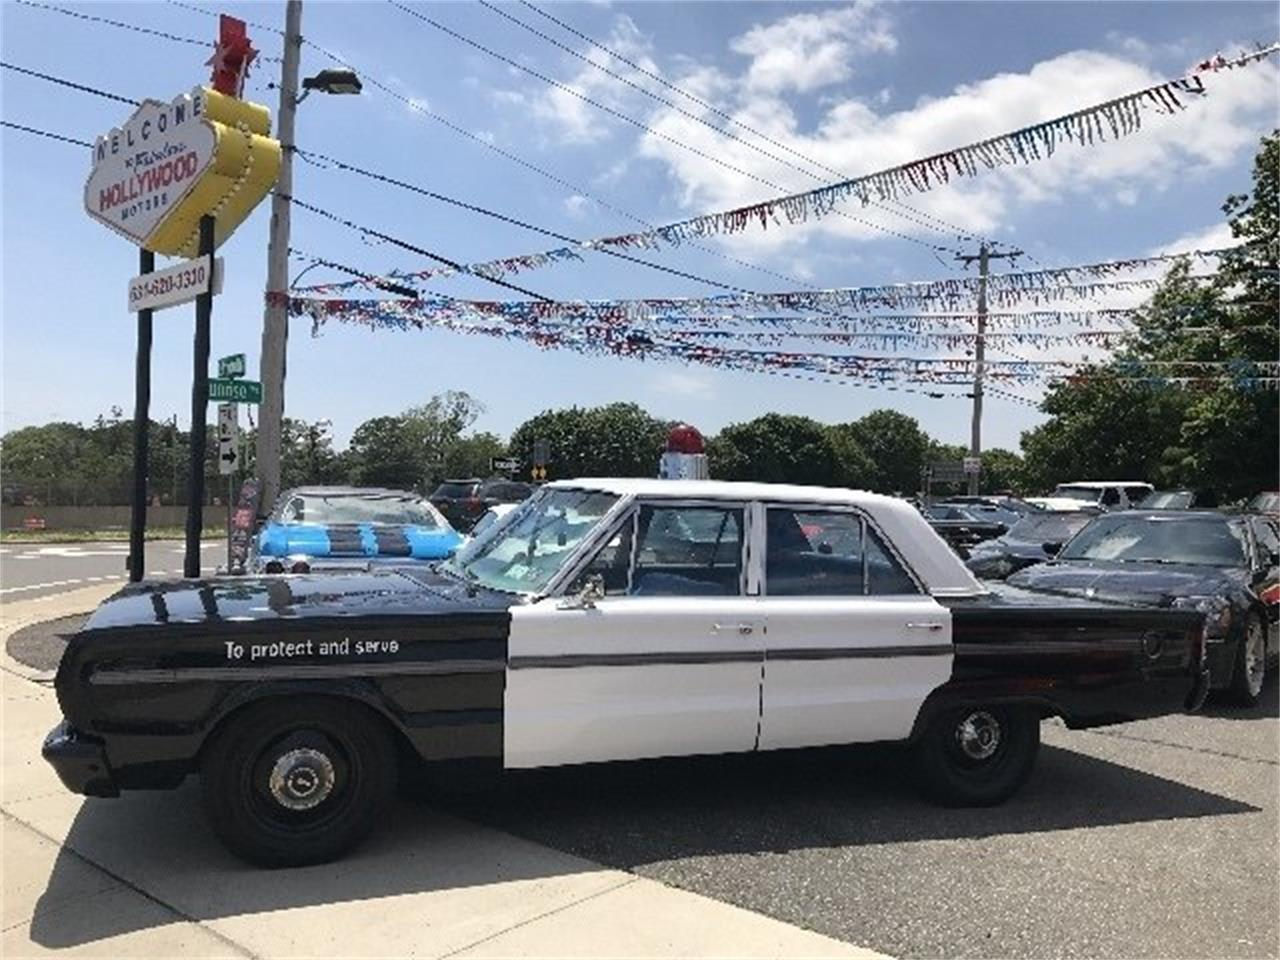 Police Car For Sale >> 1967 Plymouth Fury Police Car For Sale Classiccars Com Cc 997271